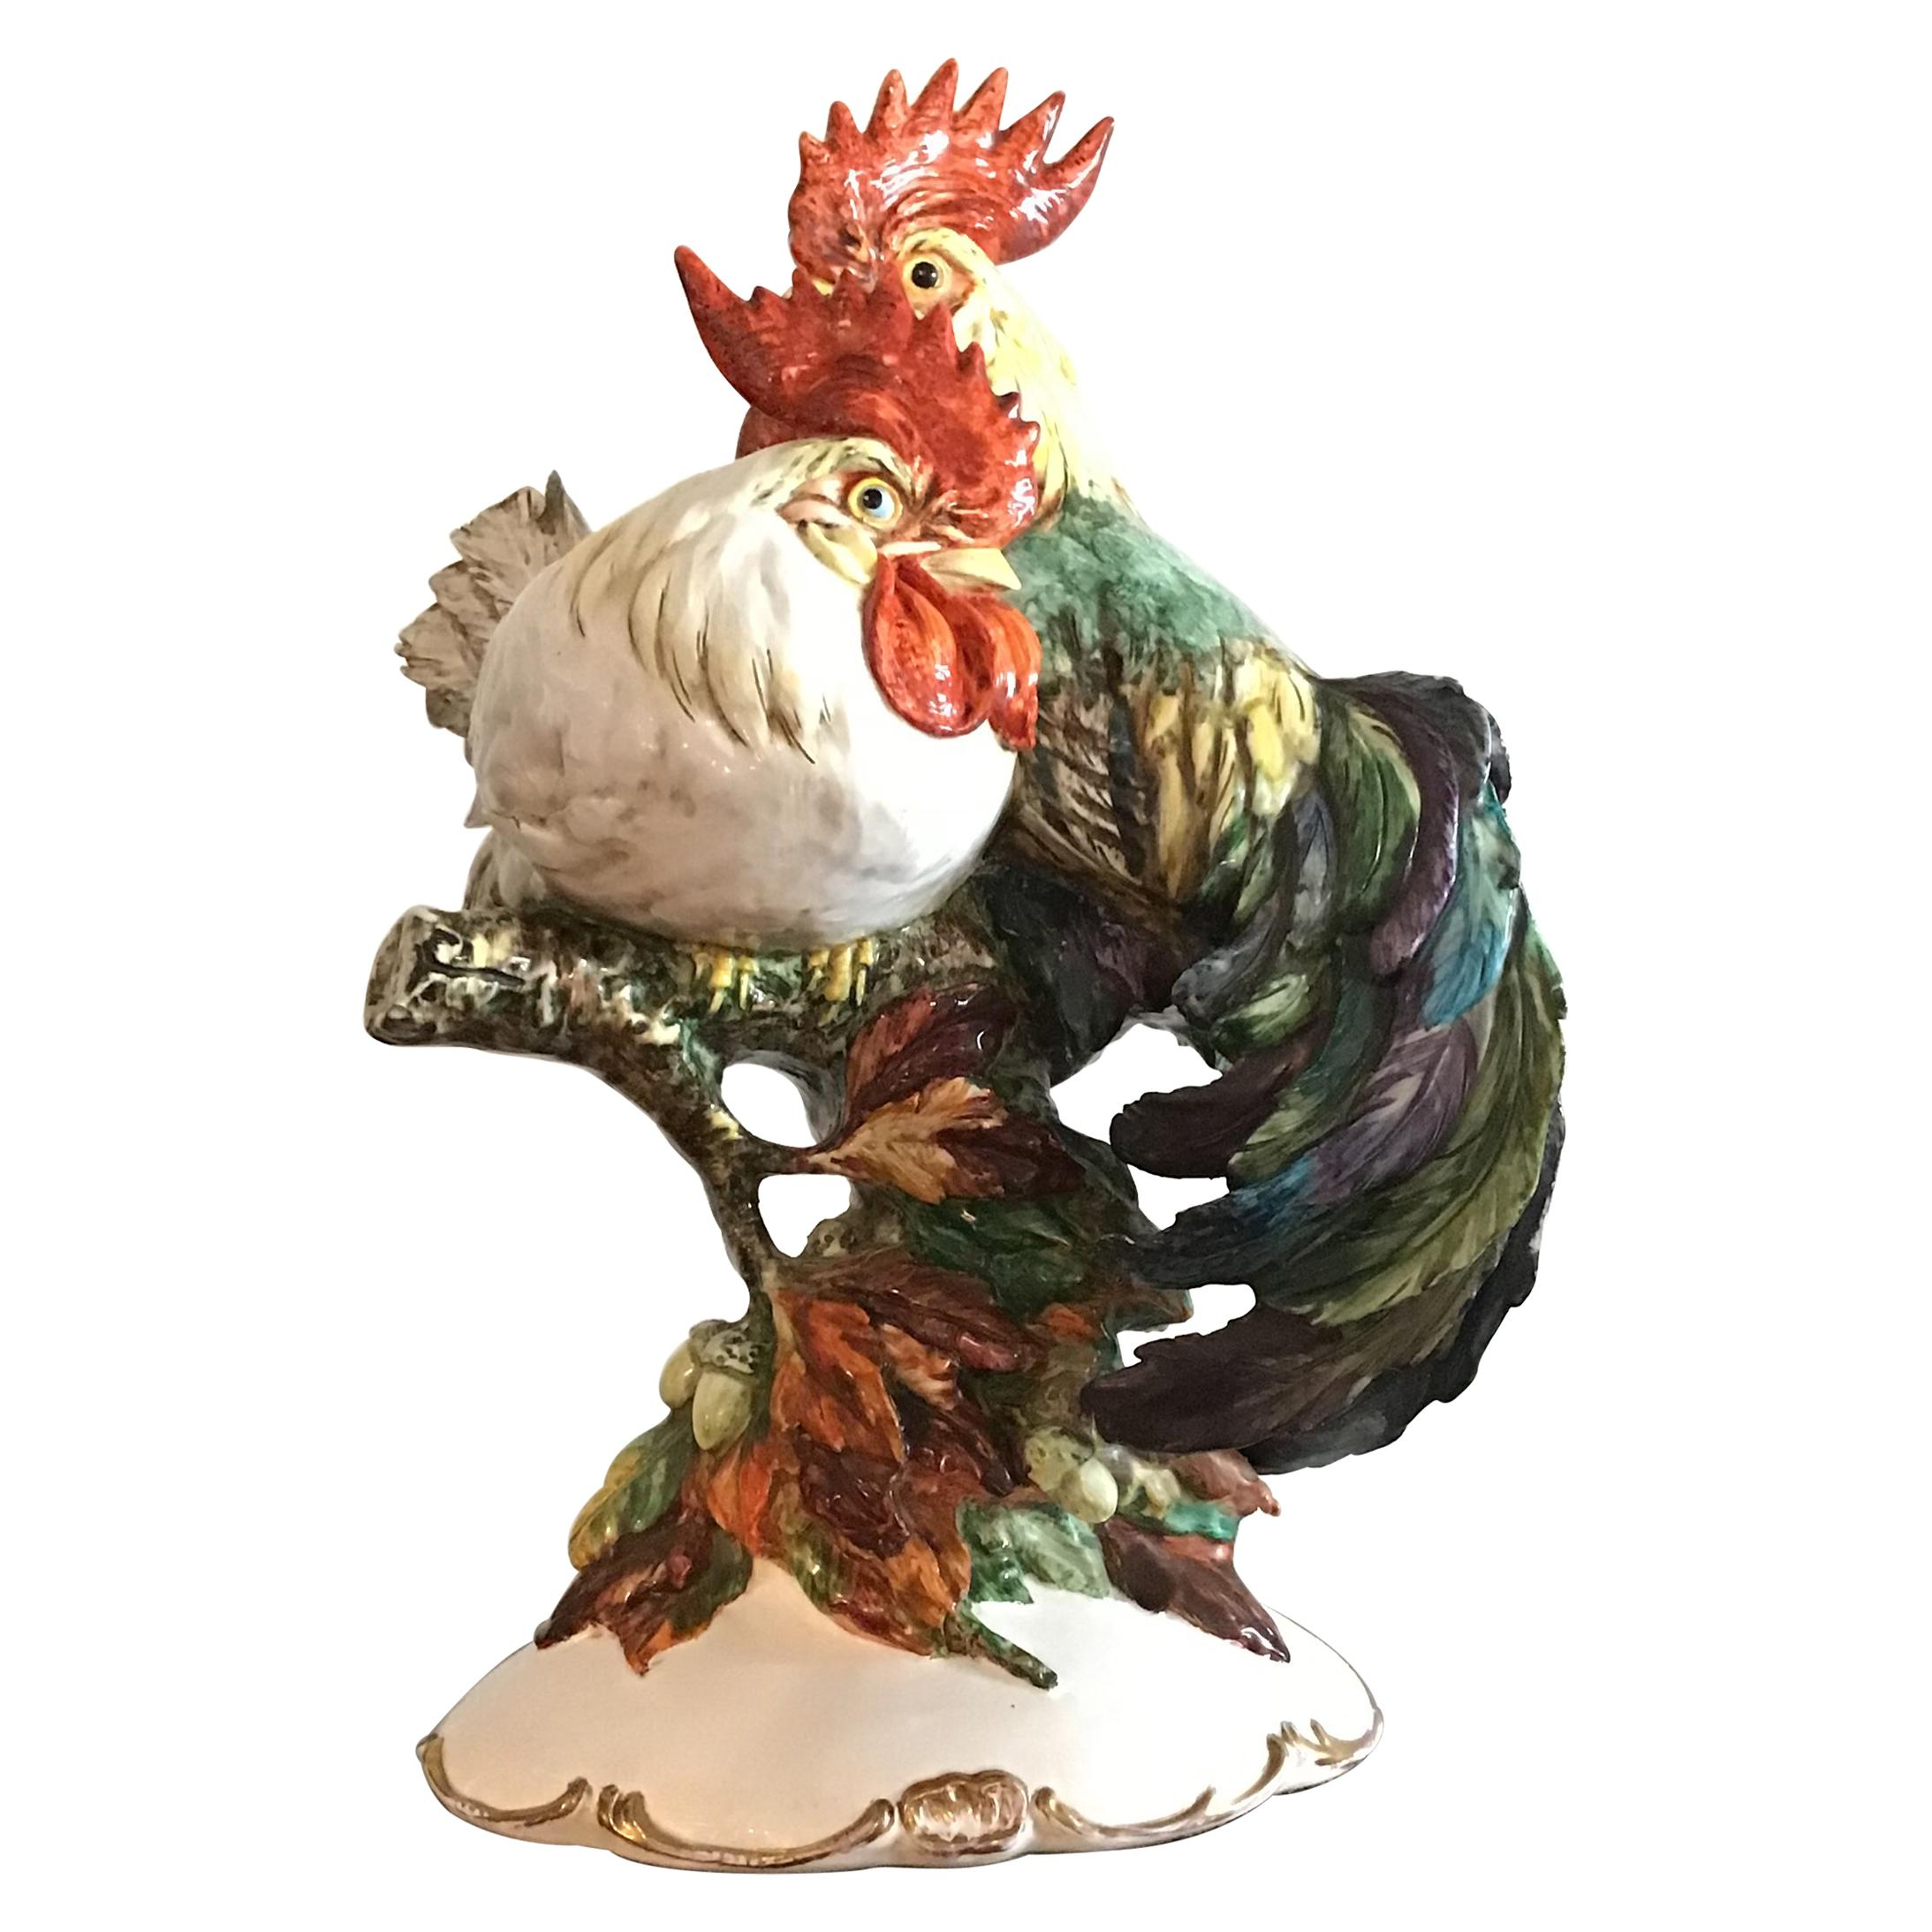 Guido Cacciapuoti Rooster and Hen Ceramic, 1940, Italy